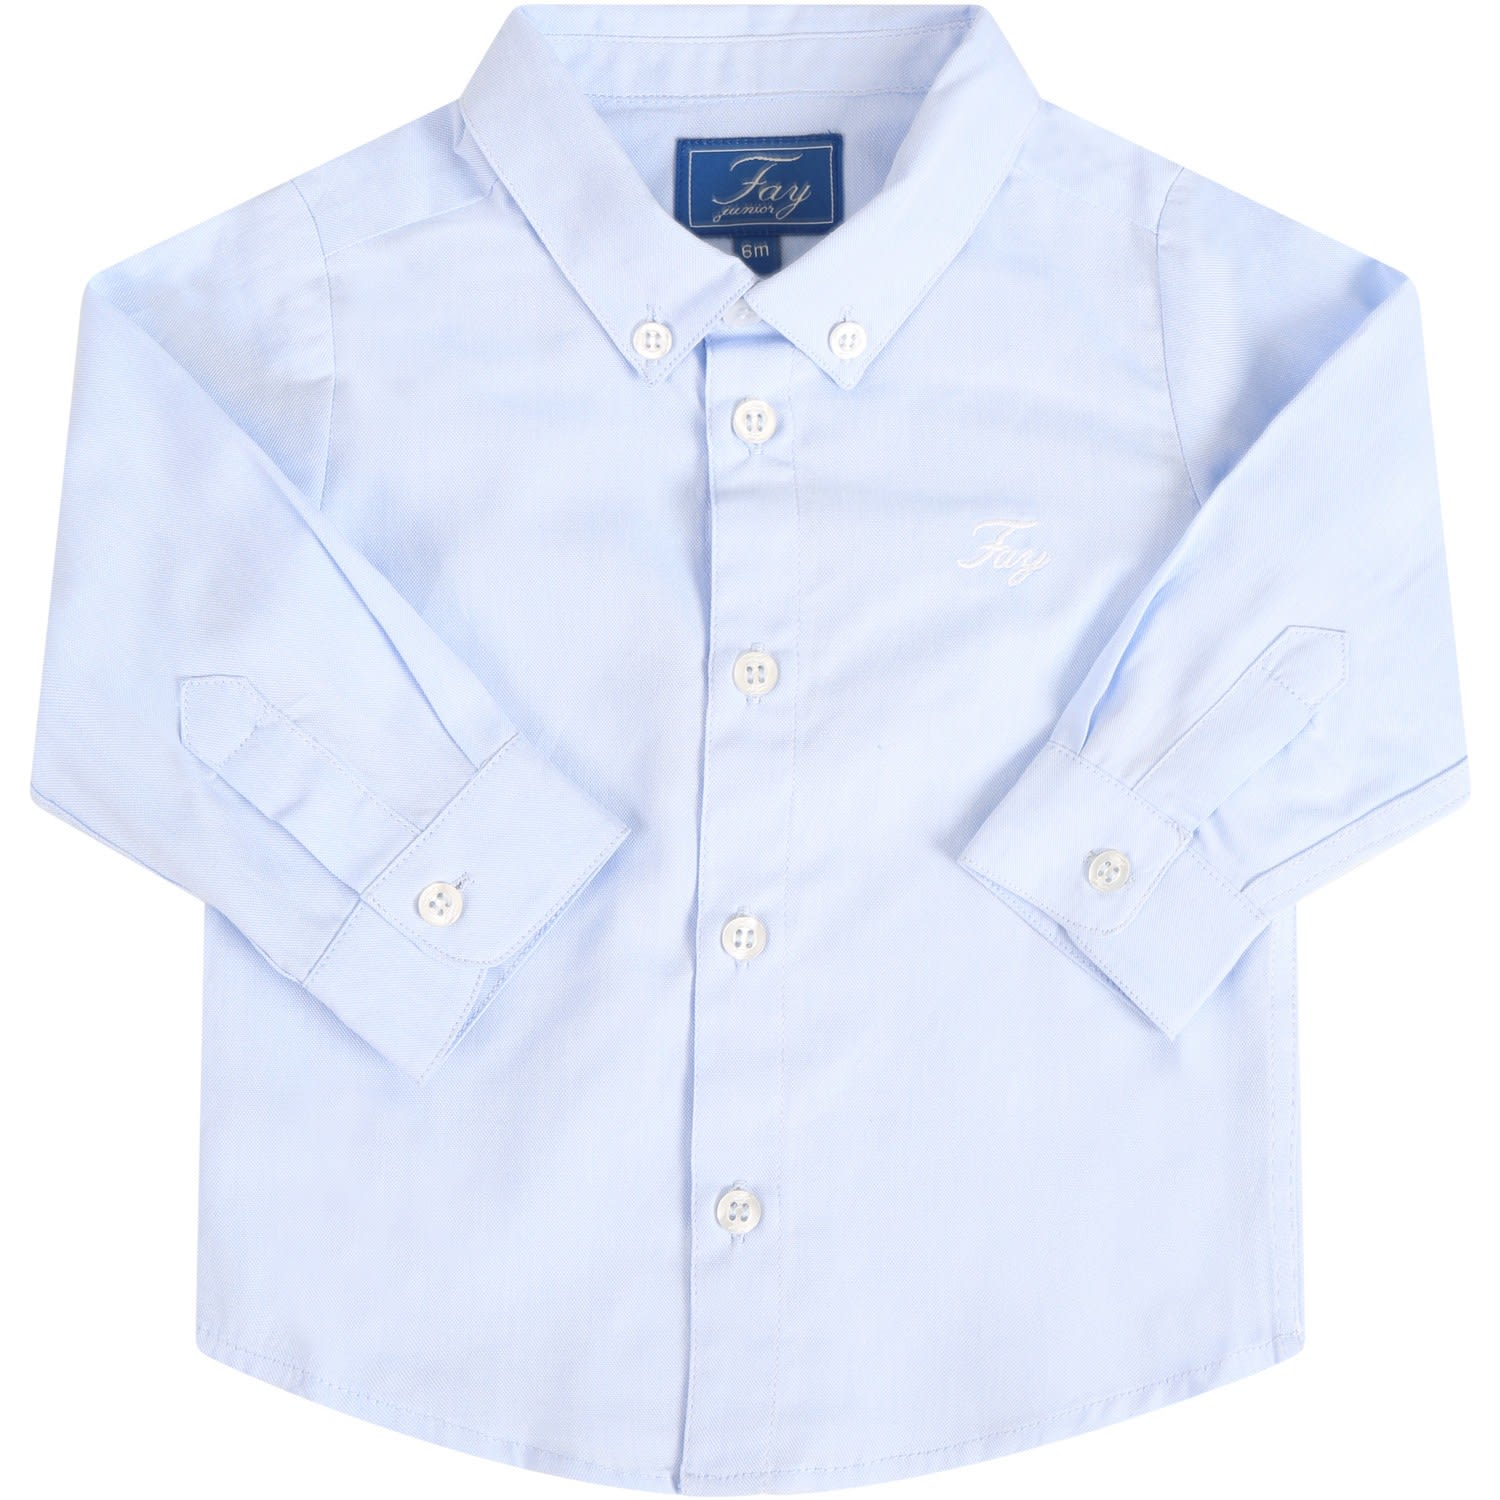 Fay Cottons WHITE SHIRT FOR BABYBOY WITH LOGO